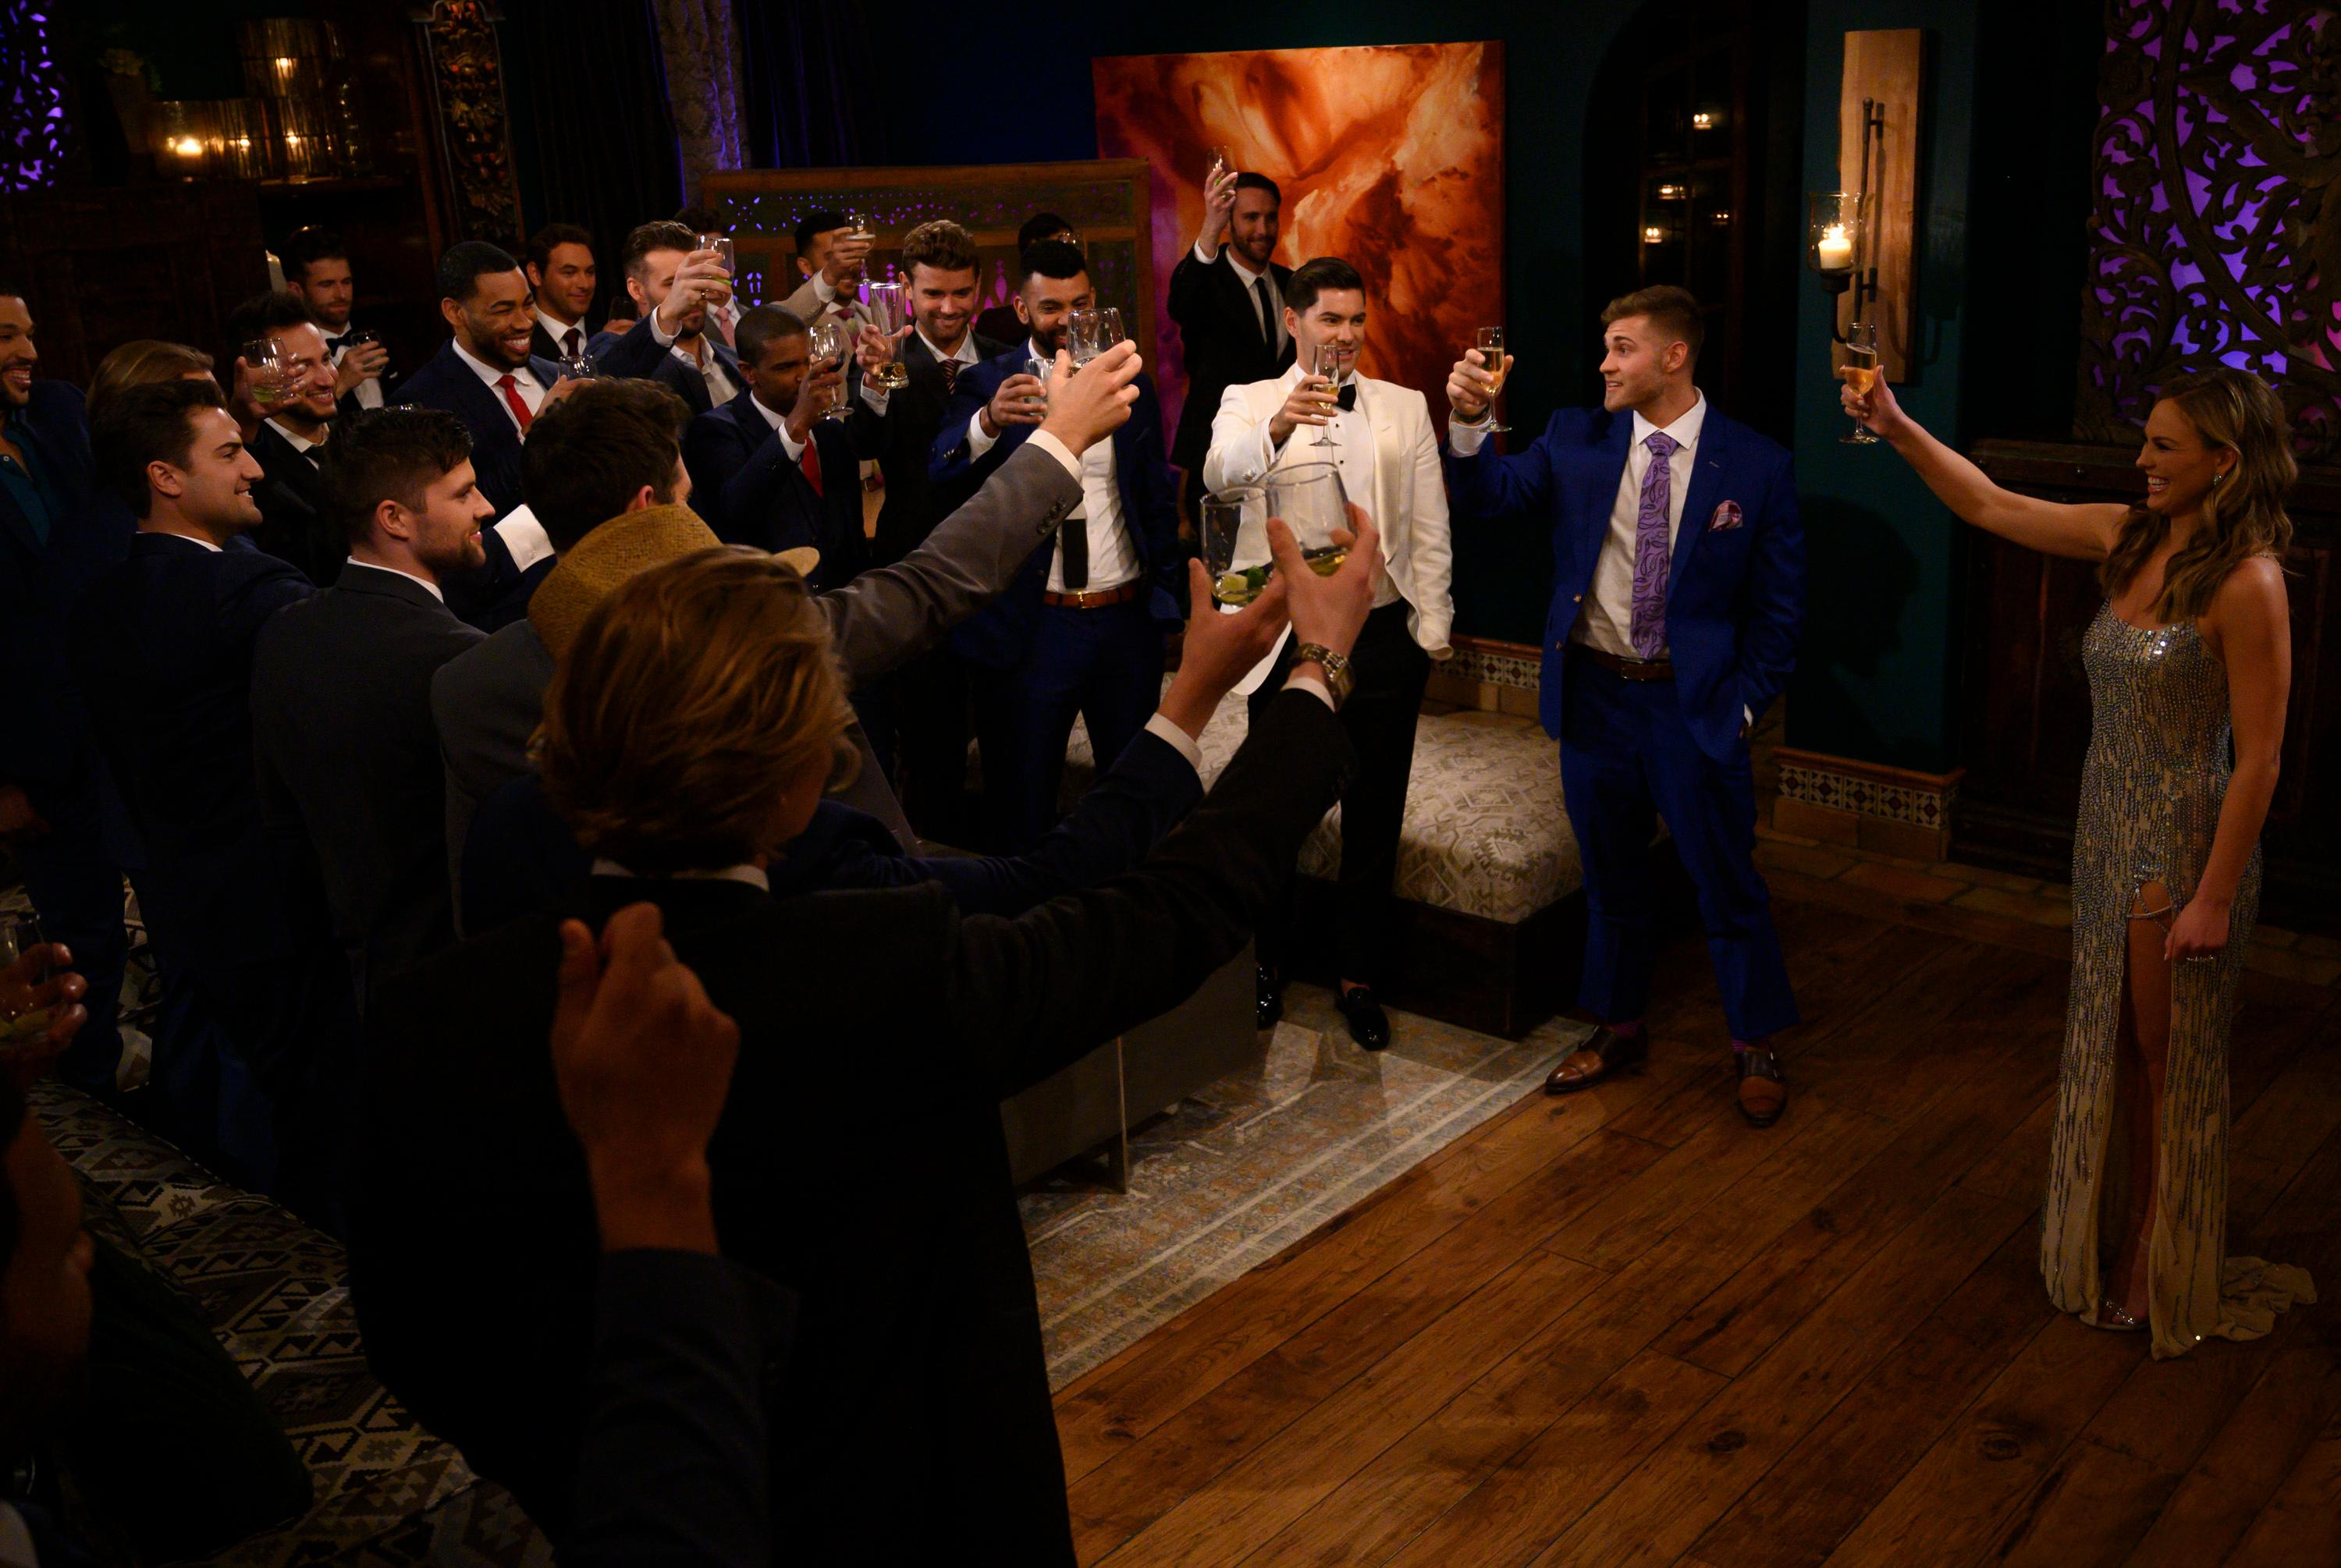 By the end of the night, only 22 lucky bachelors will remain to toast the Bachelorette, with hearts overflowing and romantic adventures yet to come.(Image:{ }John Fleenor/ ABC)